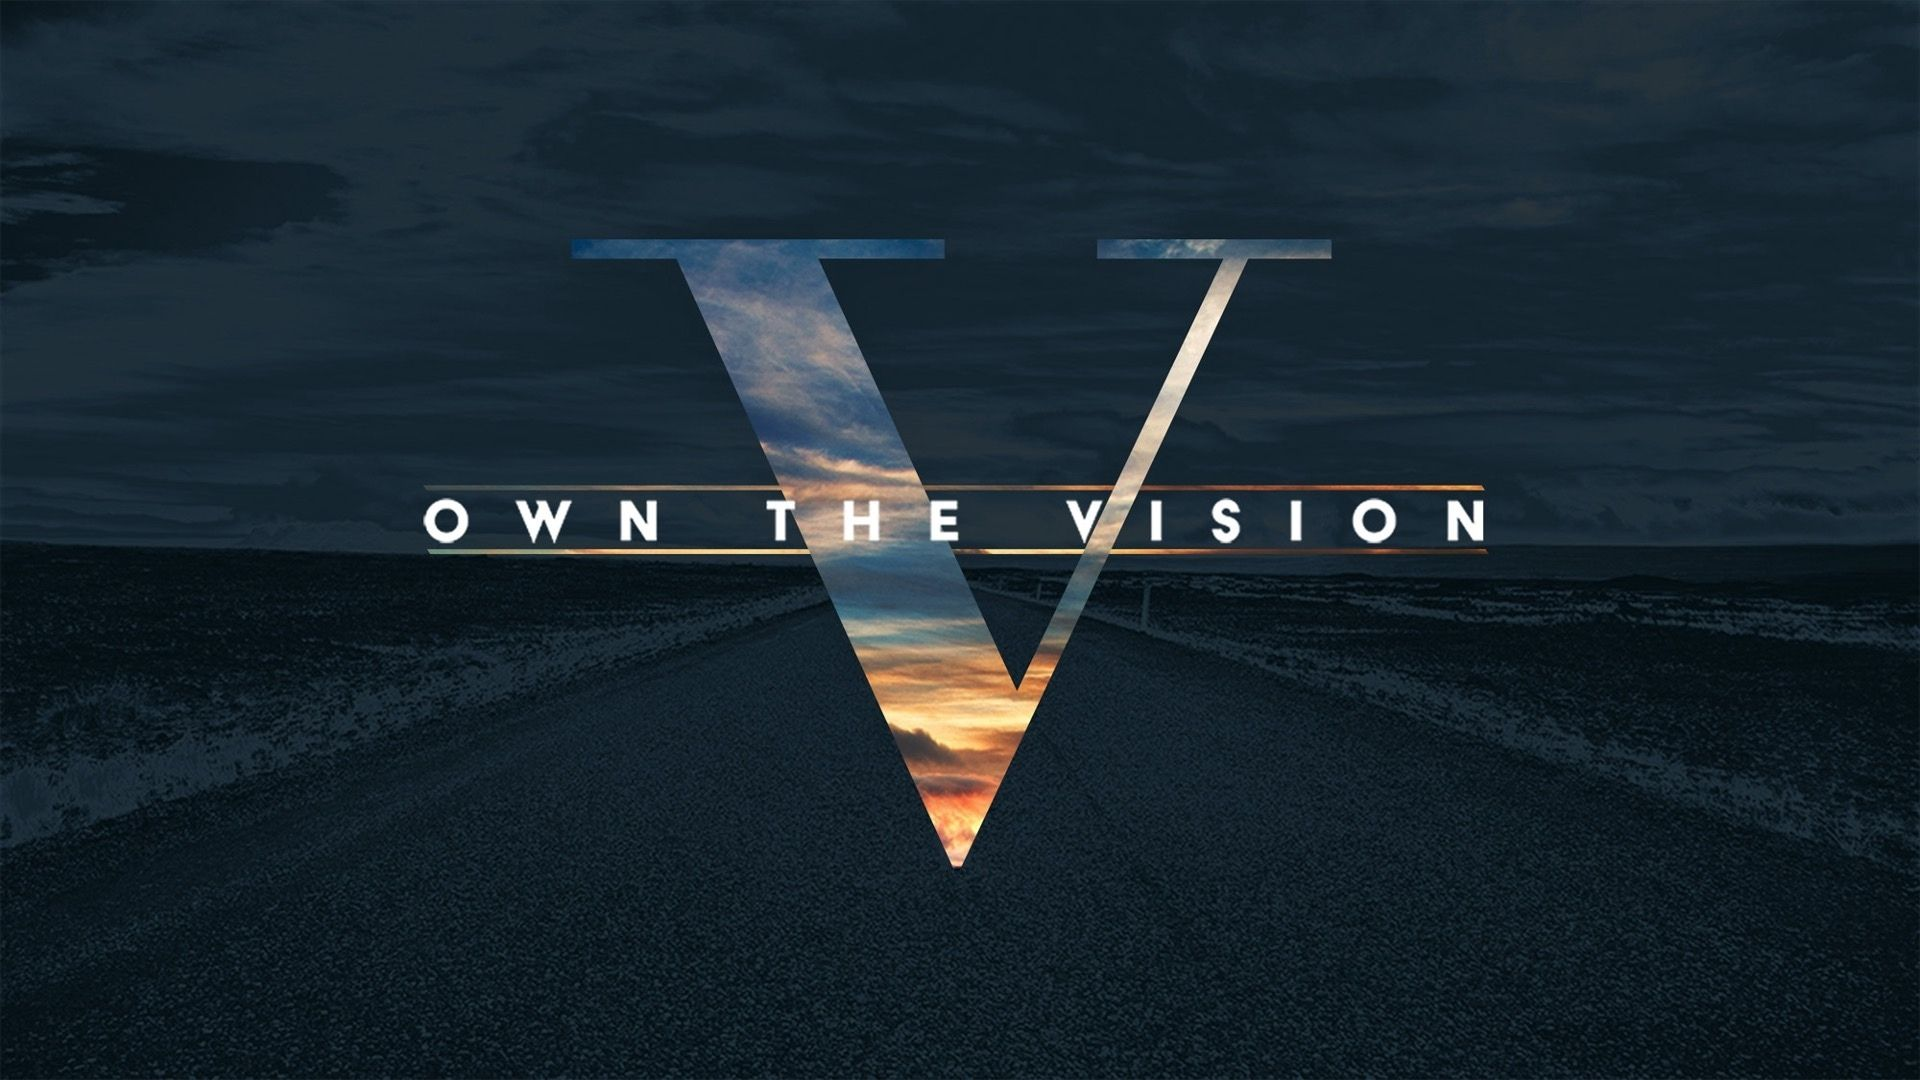 Own The Vision